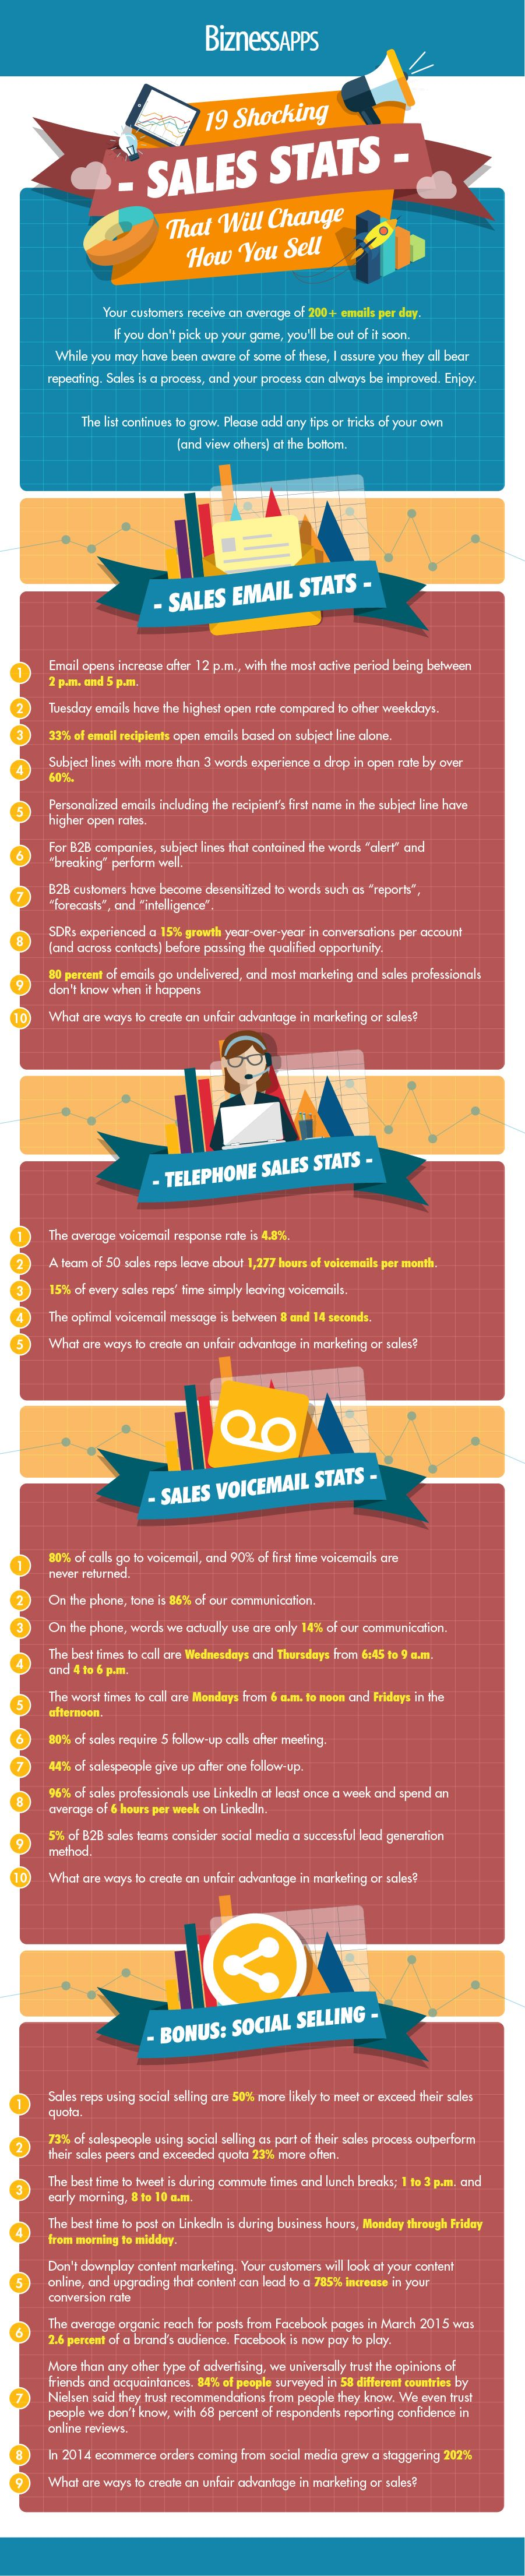 19 Shocking Sales Stats That Will Change How You Sell #Infographic